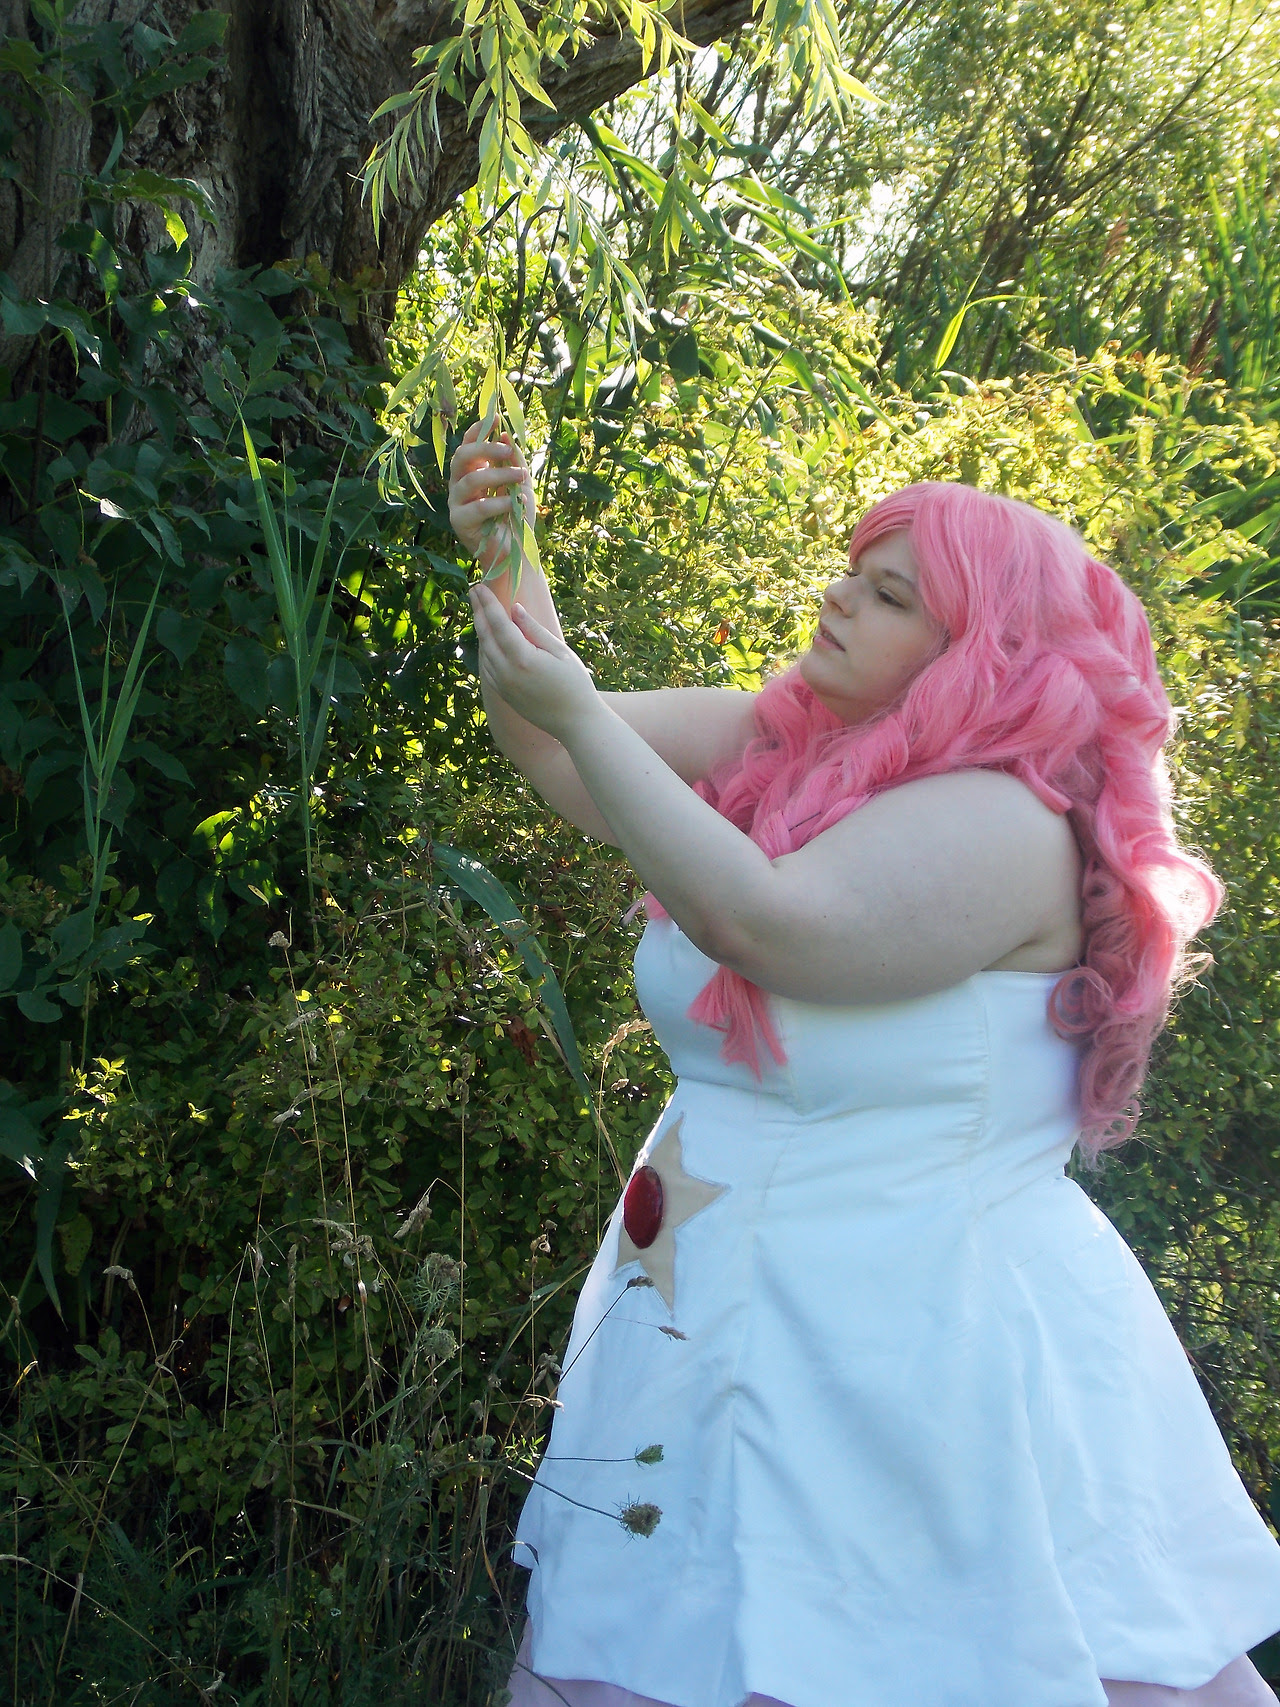 """Rose Quartz Cosplay - Part 2 Kae Burt 2016 "" Aaaaand I couldn't fit all the nicest pictures in Part 1, so here's Part 2 of my Rose Quartz, take 2."